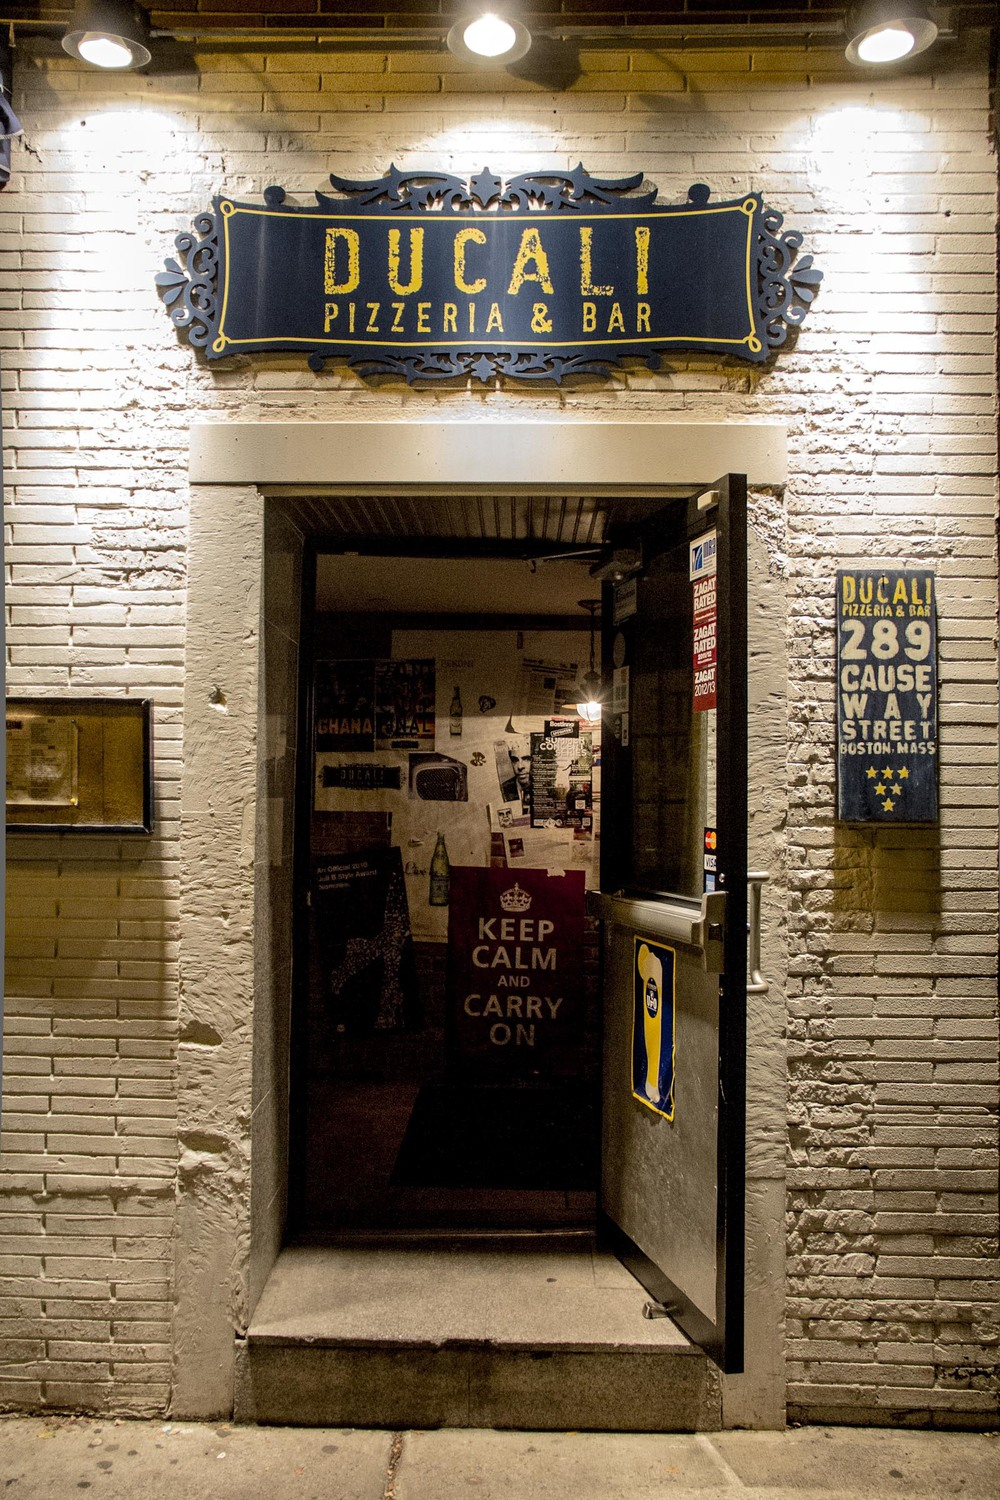 Ducali Pizzeria Entrance - North End Boston